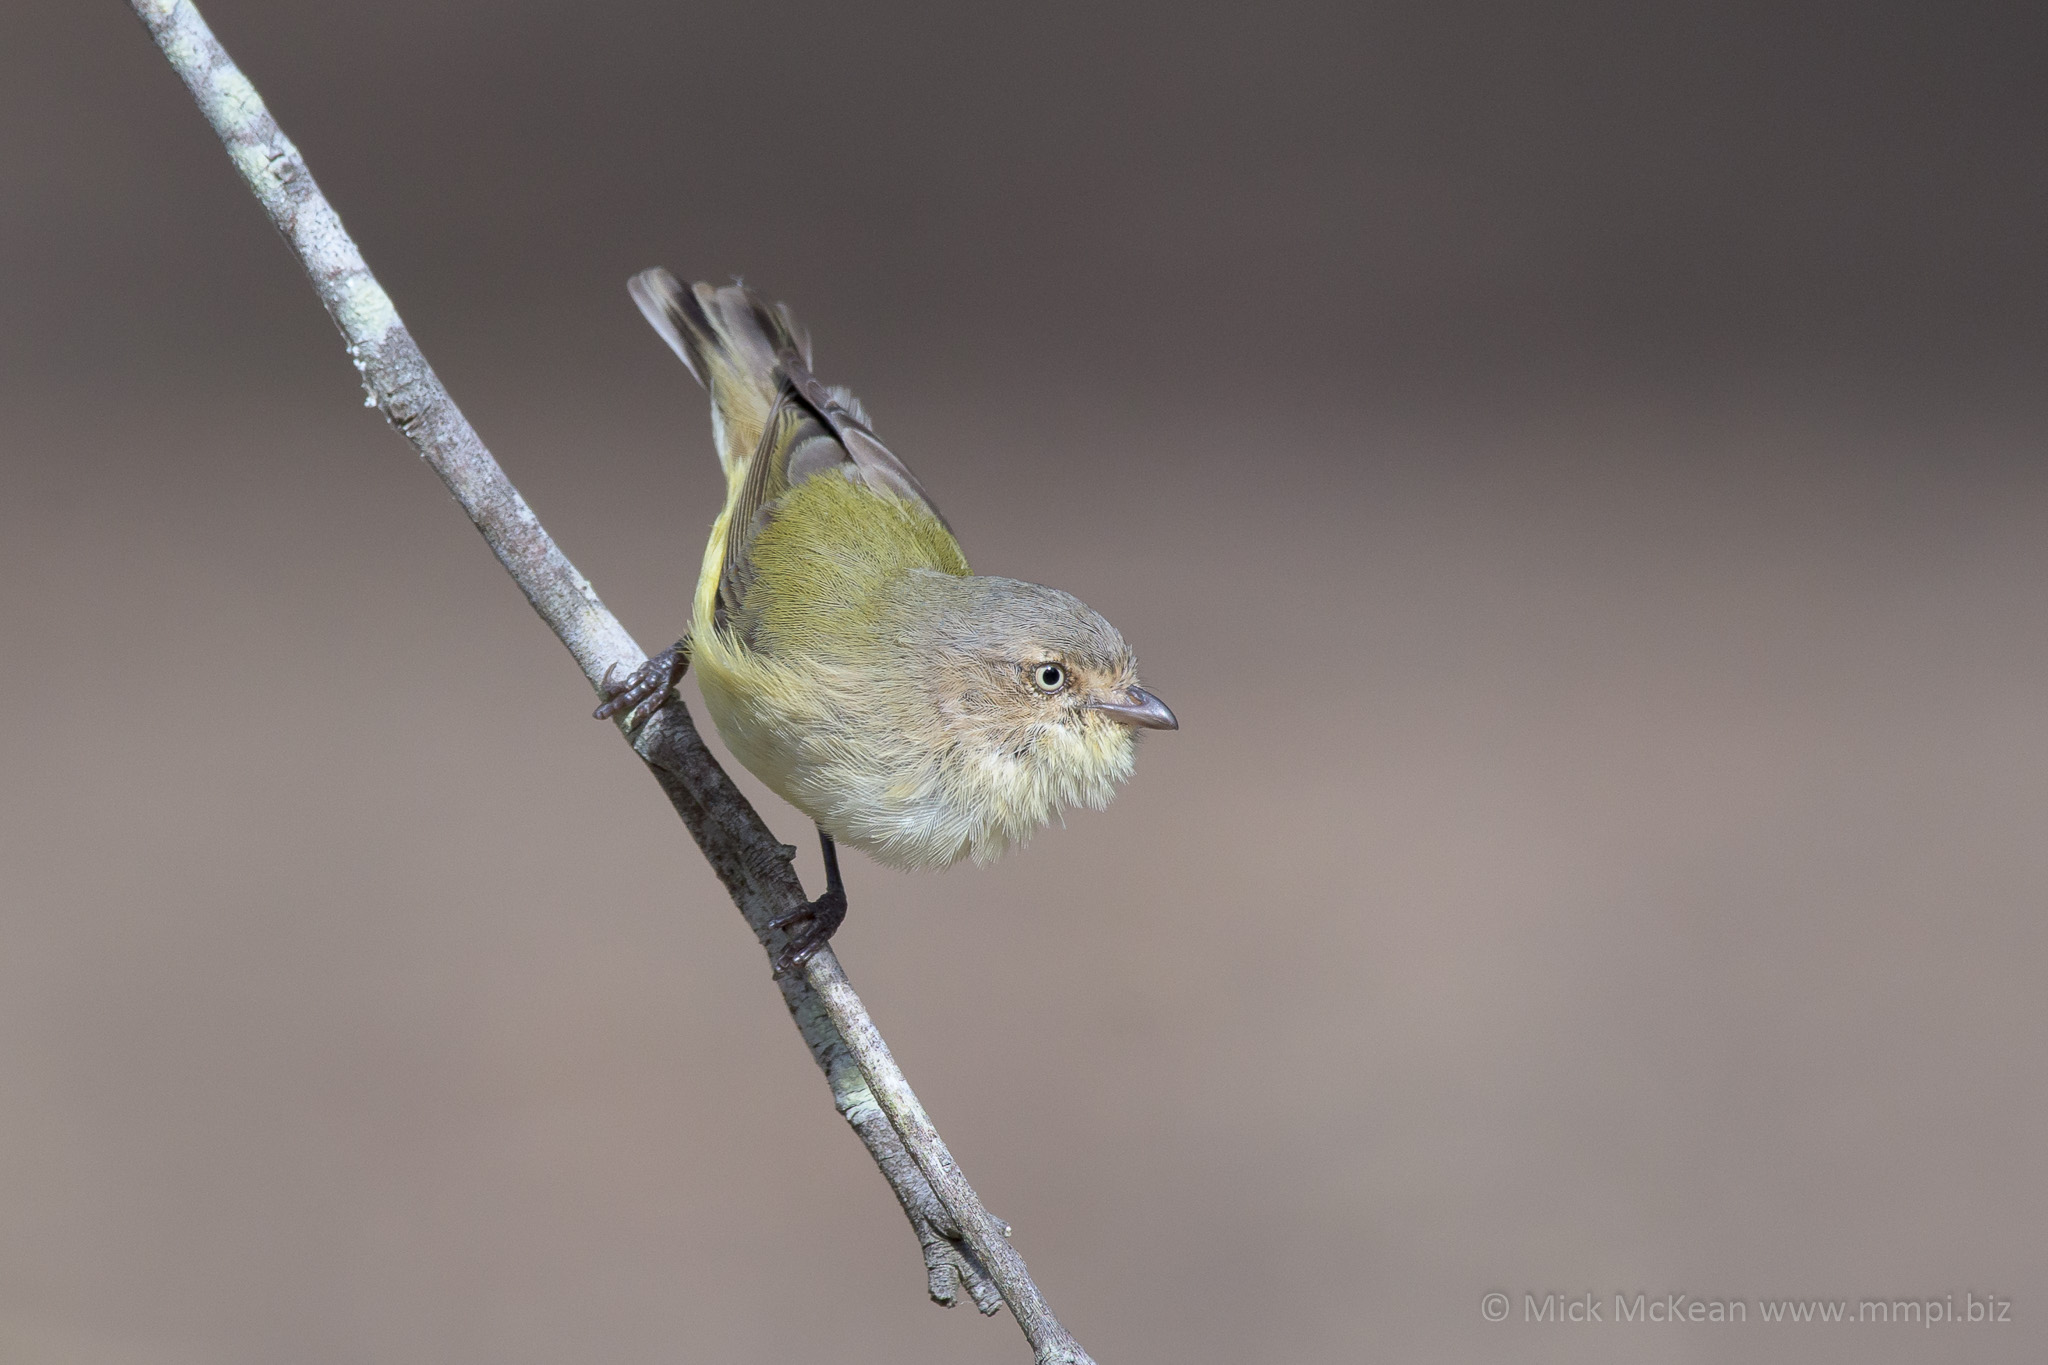 Weebill on a stick